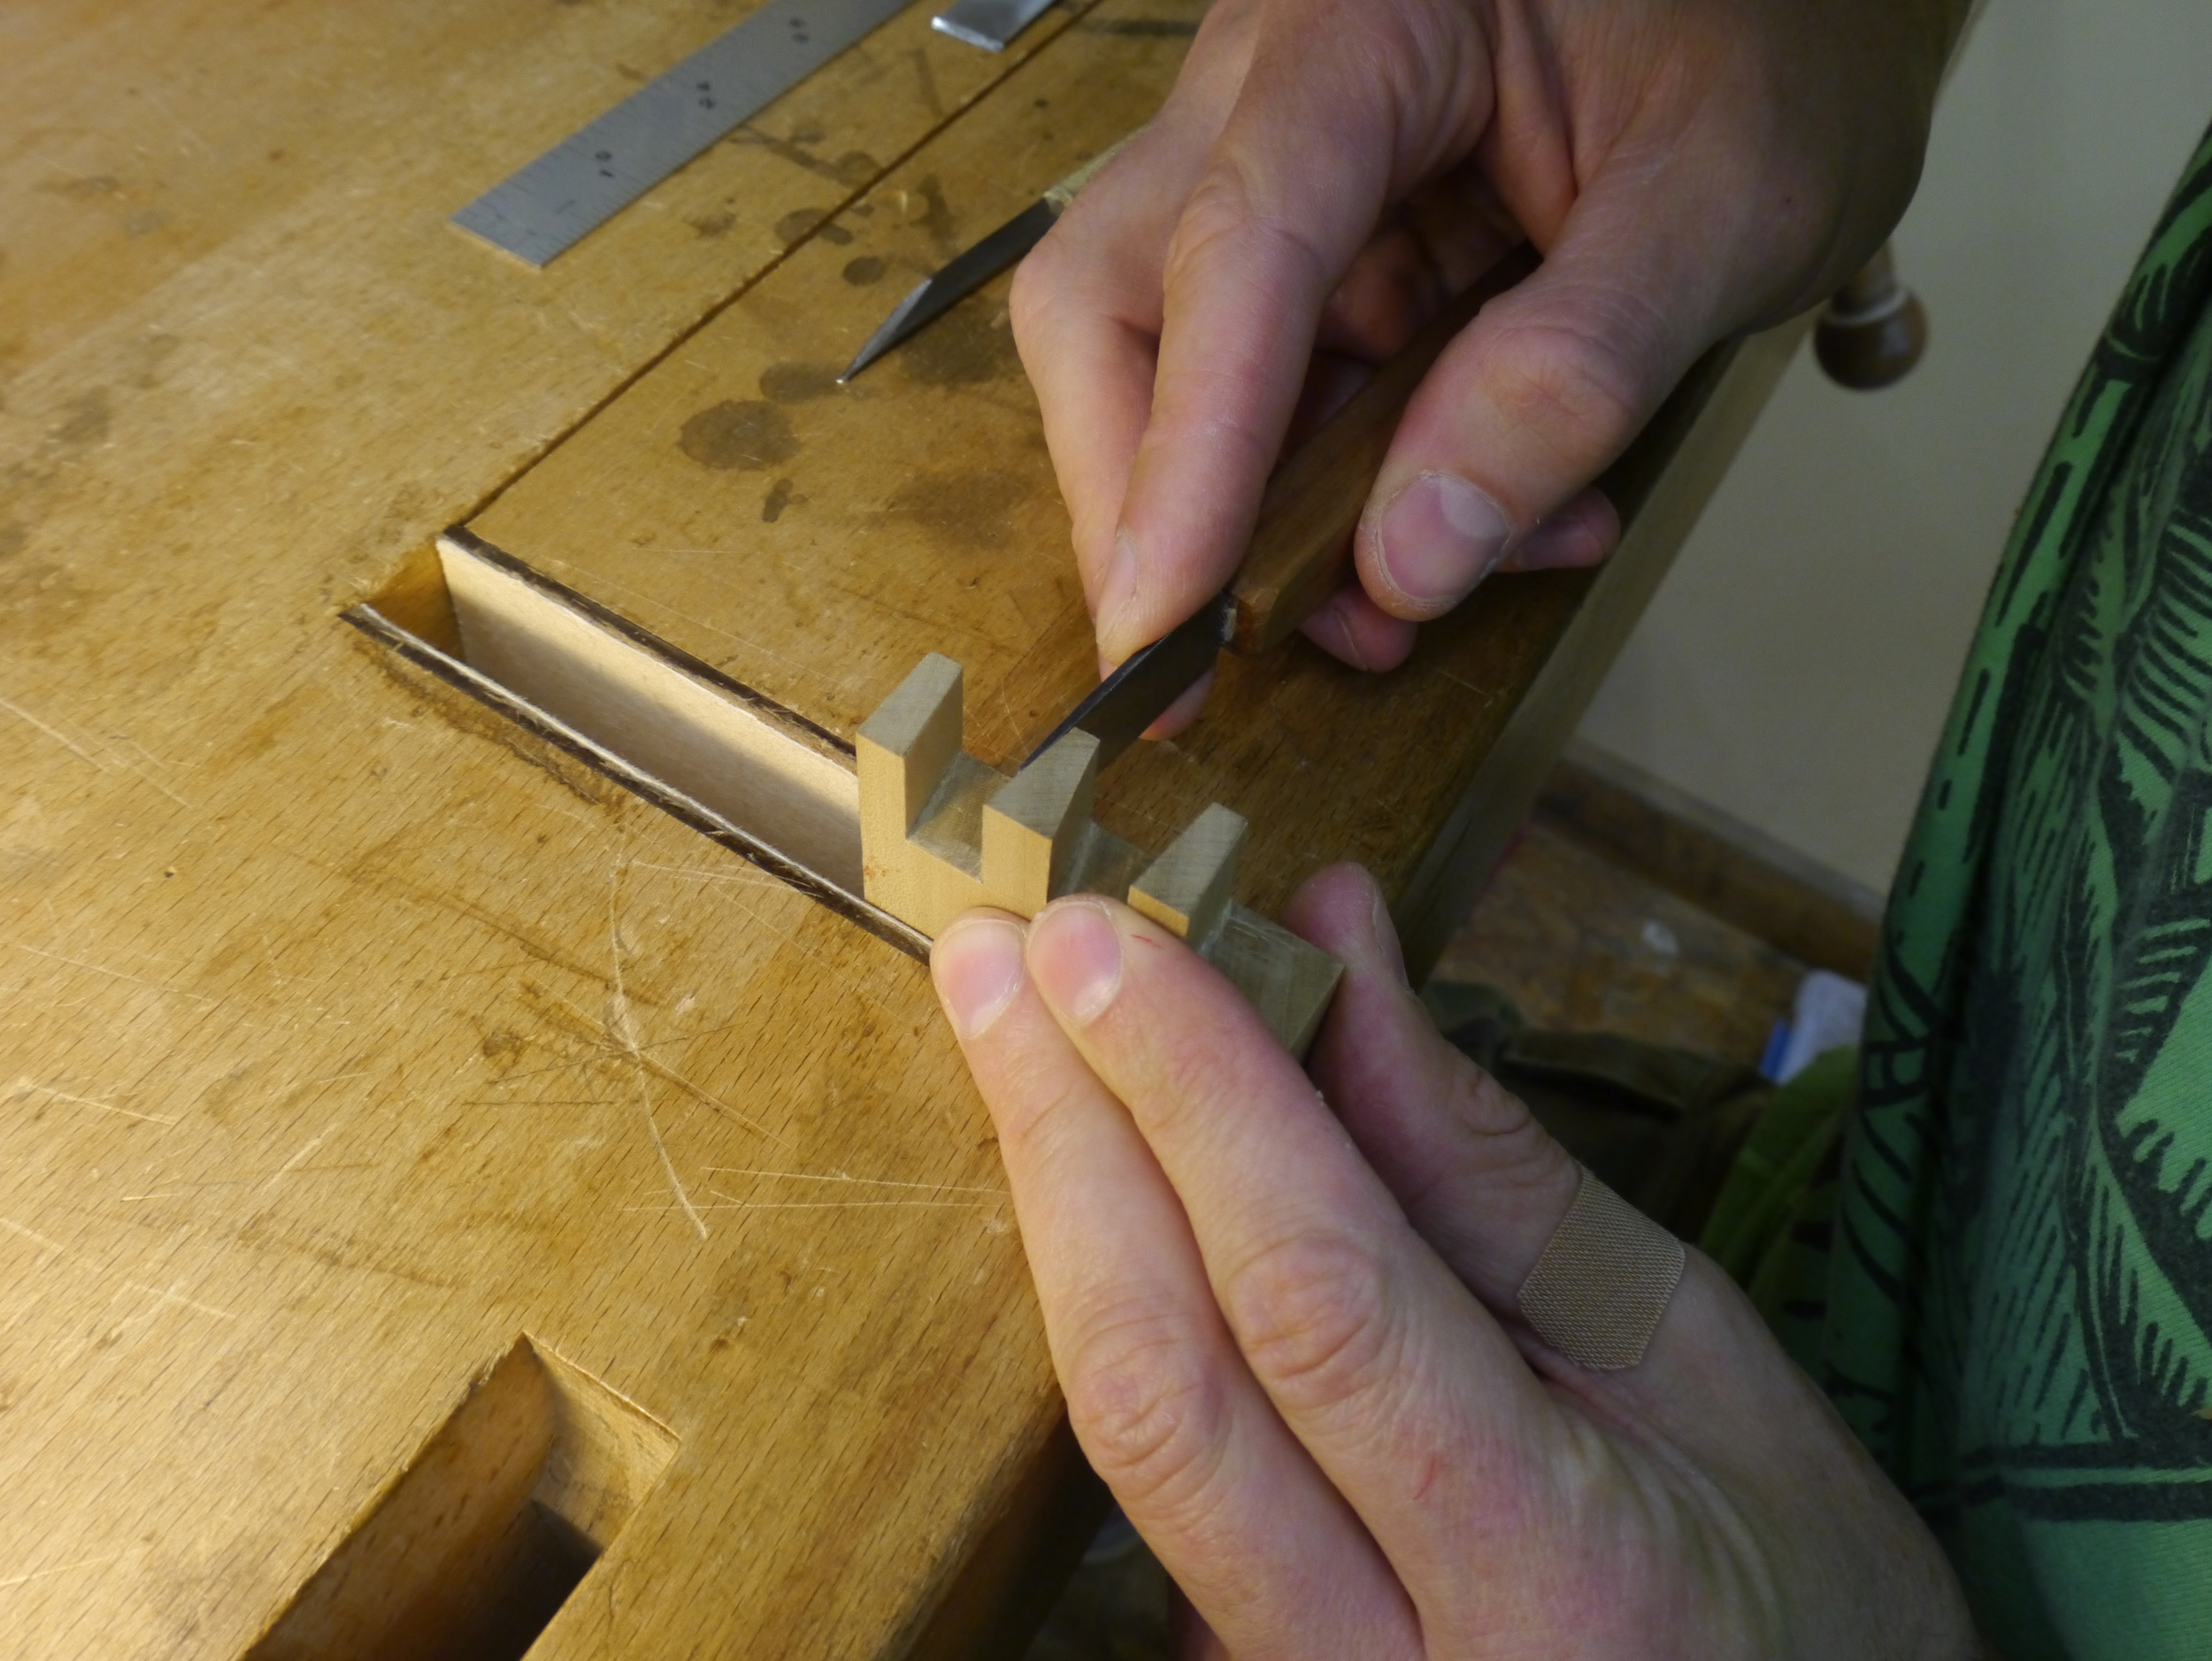 Jake uses his paring chisel and single bevel knife